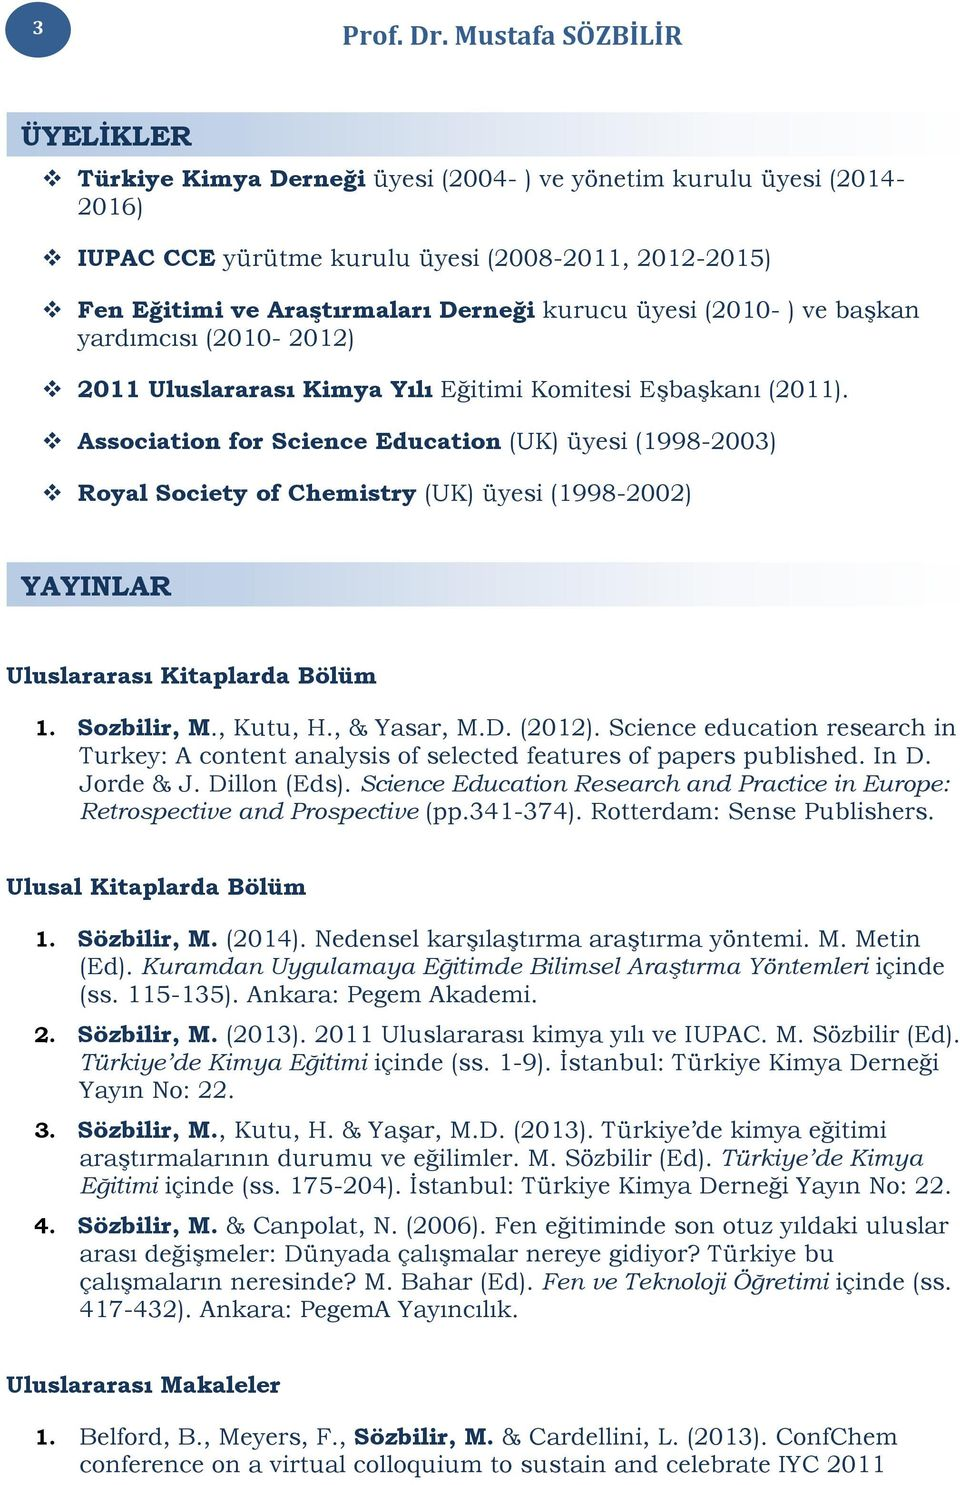 Association for Science Education (UK) üyesi (1998-2003) Royal Society of Chemistry (UK) üyesi (1998-2002) YAYINLAR Uluslararası Kitaplarda Bölüm 1. Sozbilir, M., Kutu, H., & Yasar, M.D. (2012).